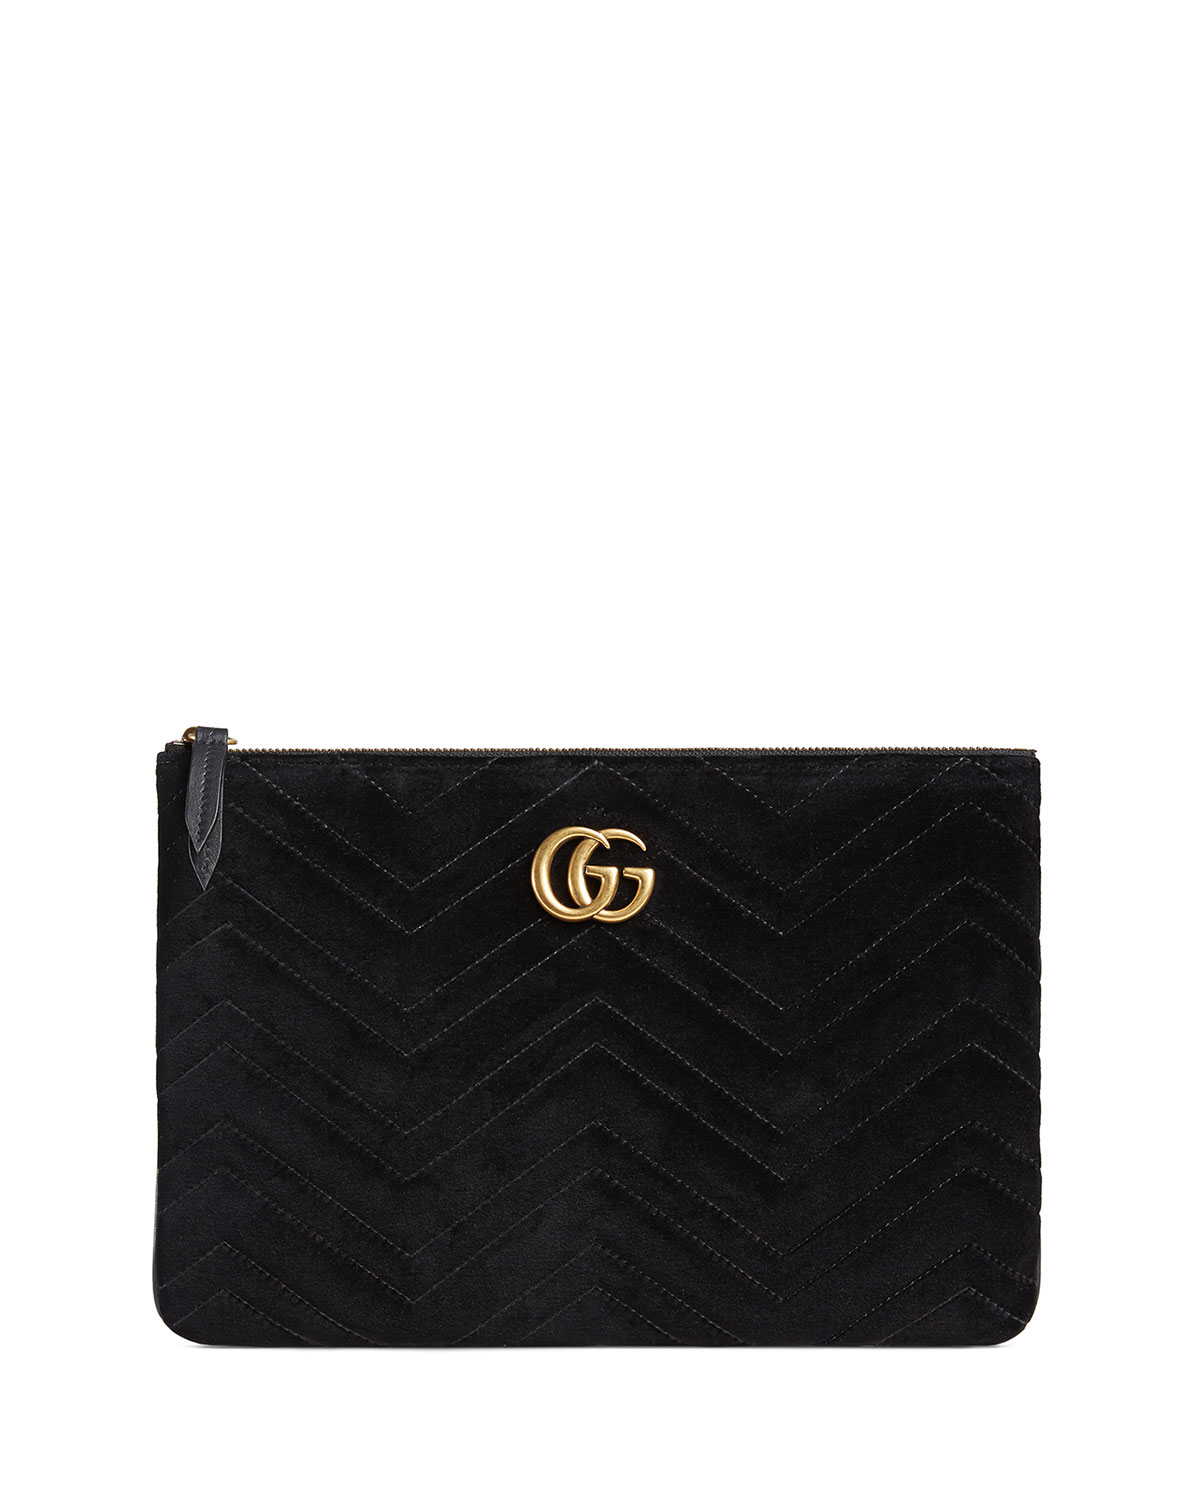 bc5a6a97bf2 Gucci GG Marmont Velvet Zip Pouch Bag